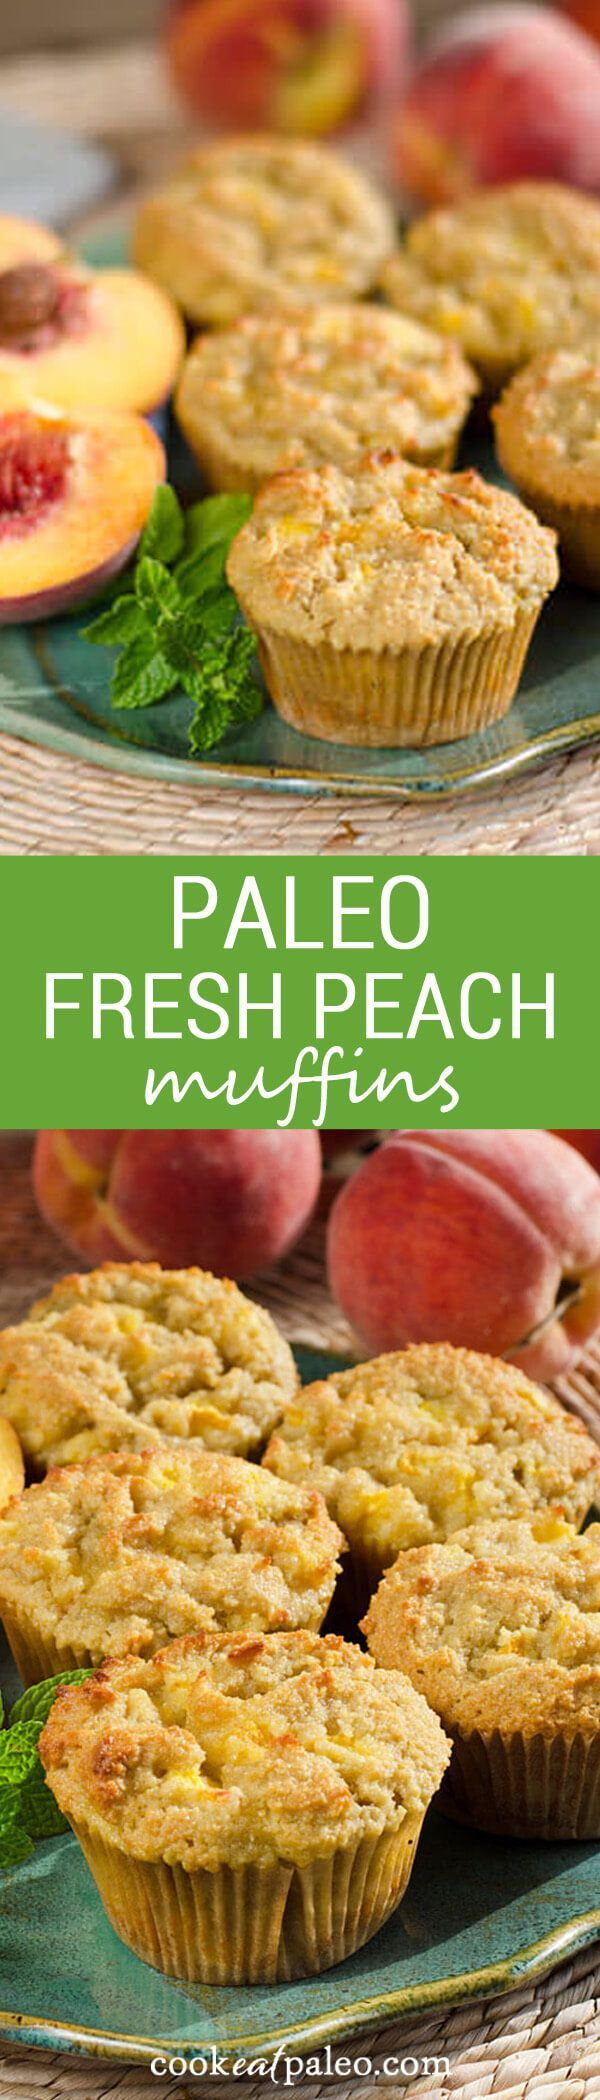 I love the chunks of peaches baked into this fresh peach paleo muffins recipe. The flavor of the peaches is wonderful with the almond, honey and lemon. {gluten-free, grain-free} ~ http://cookeatpaleo.com